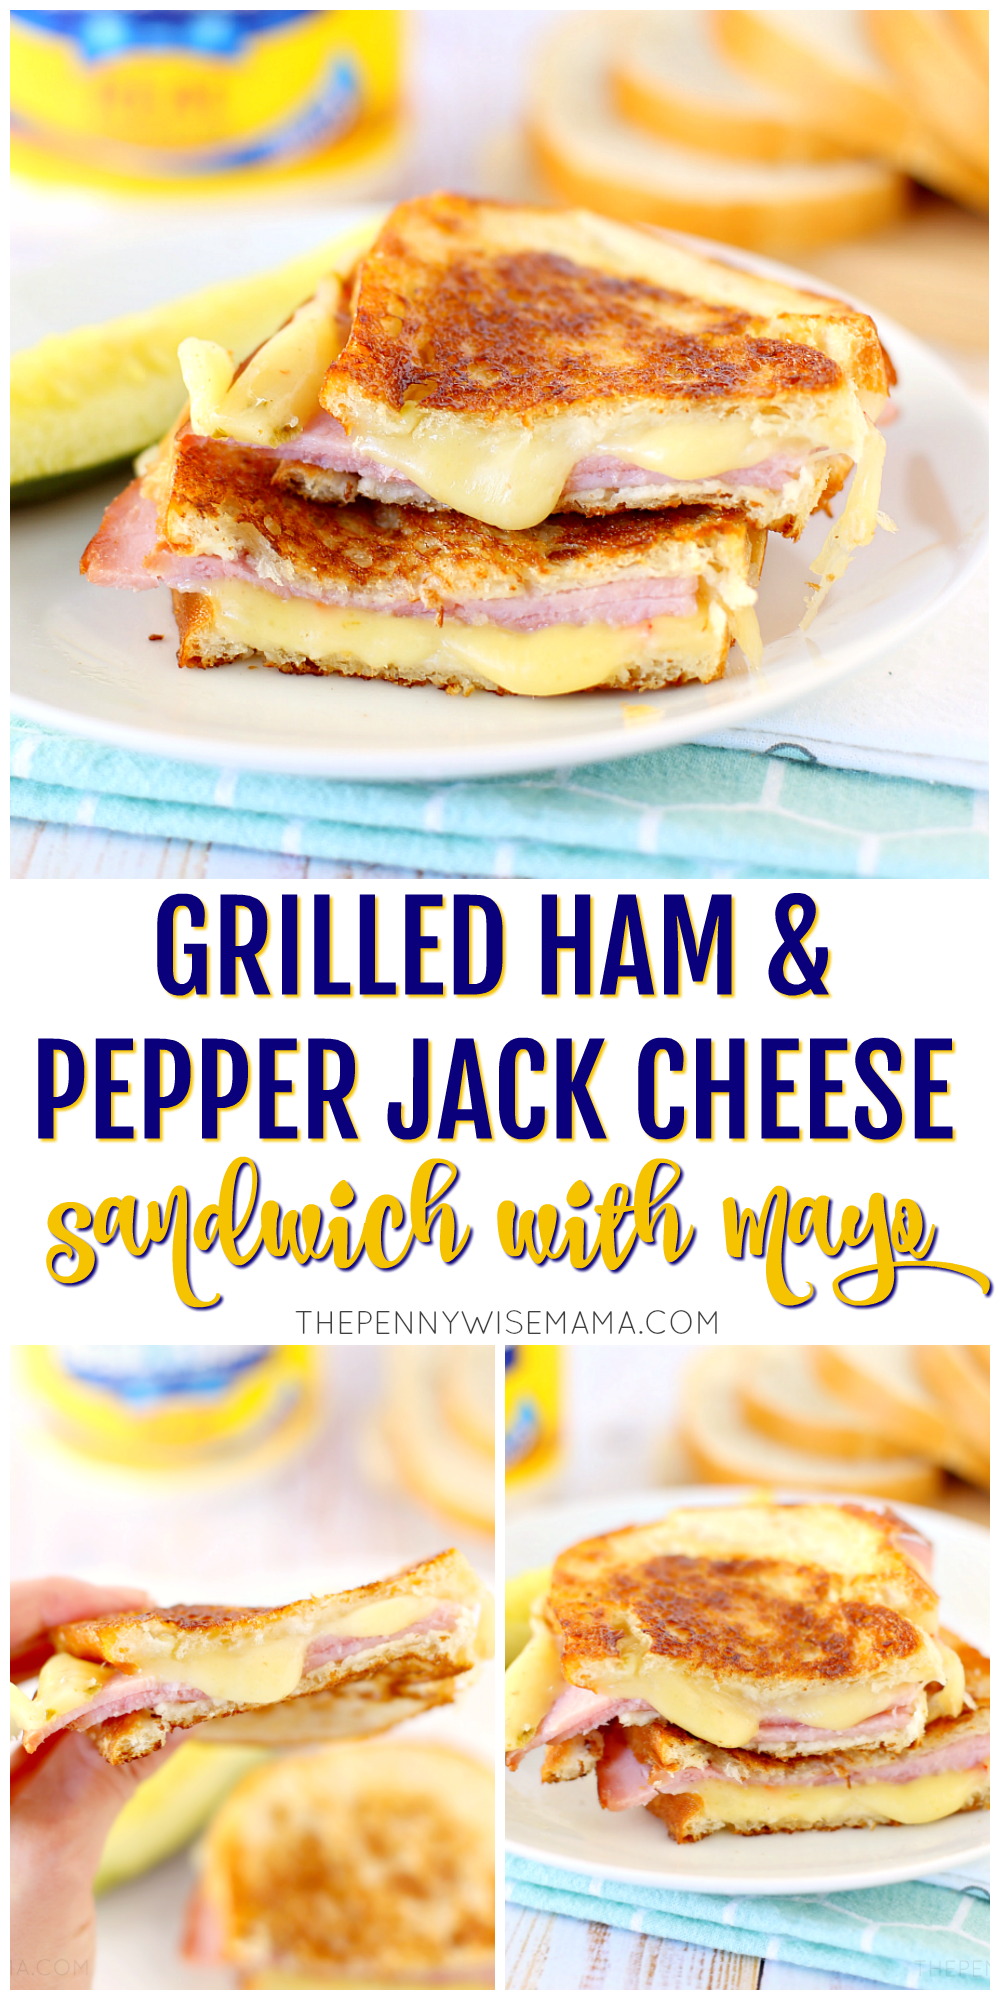 Grilled Ham & Pepper Jack Cheese Sandwich with Mayo - simple & delicious recipe using leftover ham! #ham #grilledcheese #recipes #easyrecipes